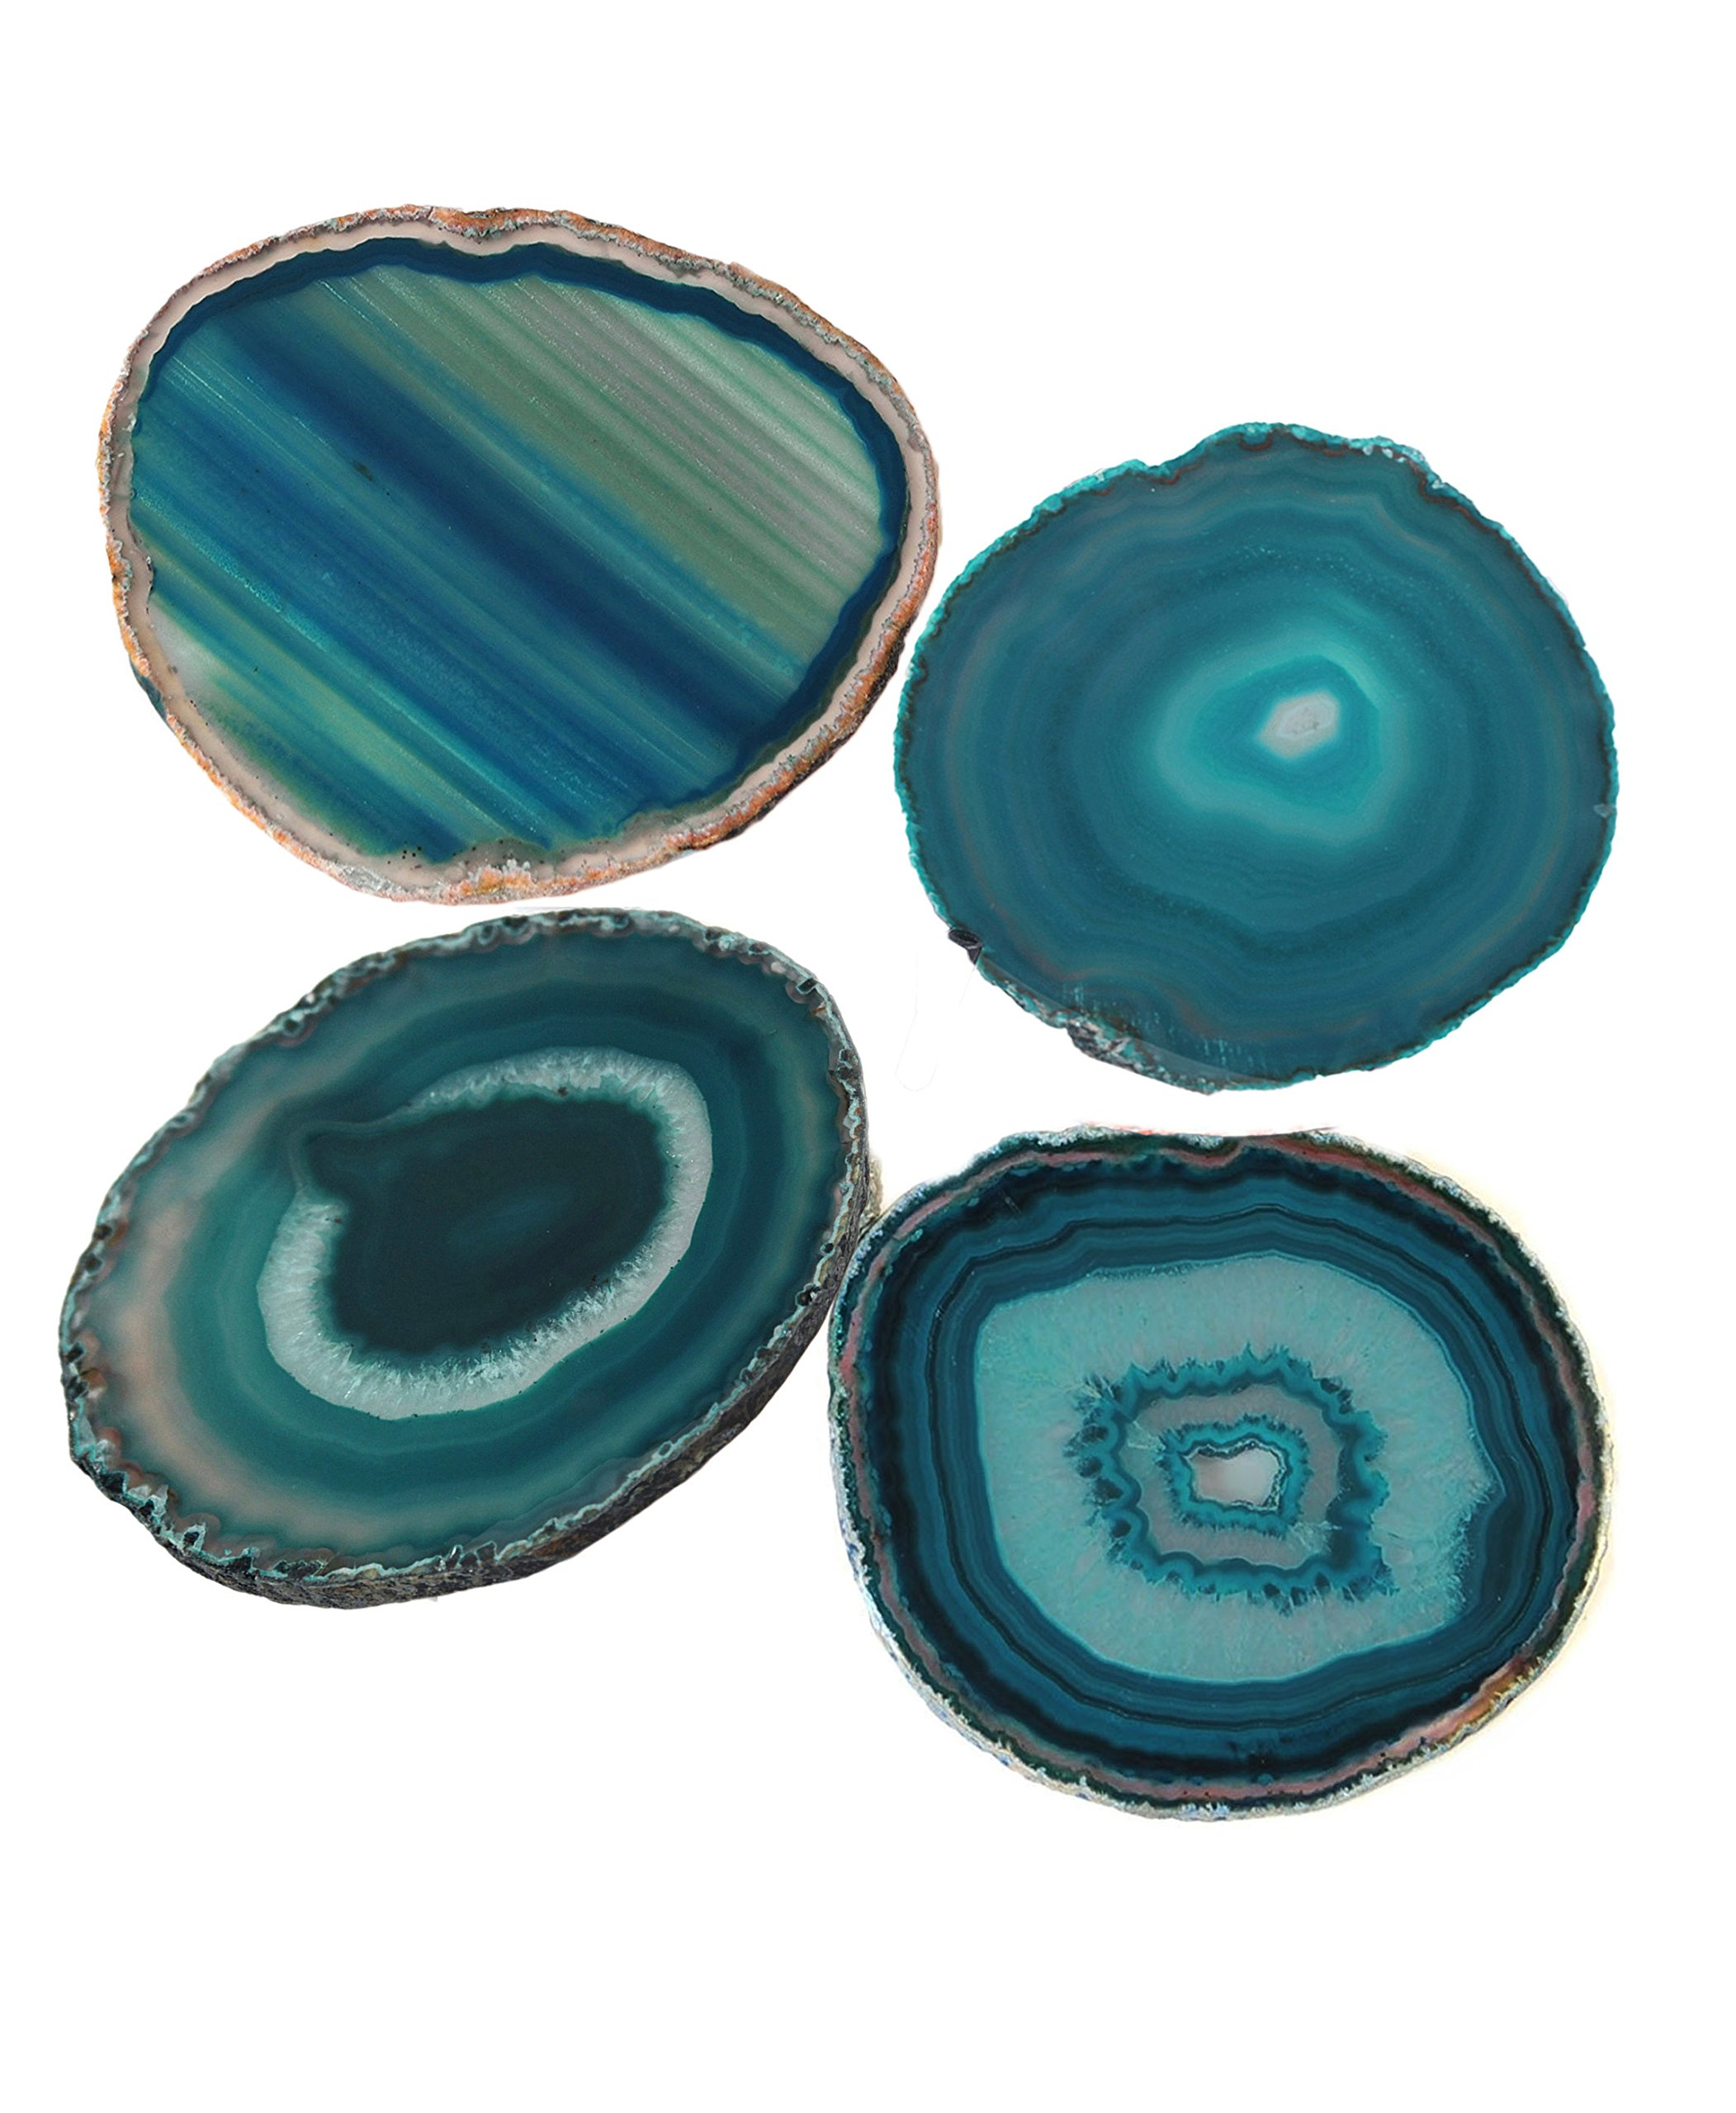 AMOYSTONE Teal Agate Coaster 3.5-4'' Dyed Sliced Genuine Brazilian Aqua Agate Drink Coasters with Rubber Bumper Set of 4 by AMOYSTONE